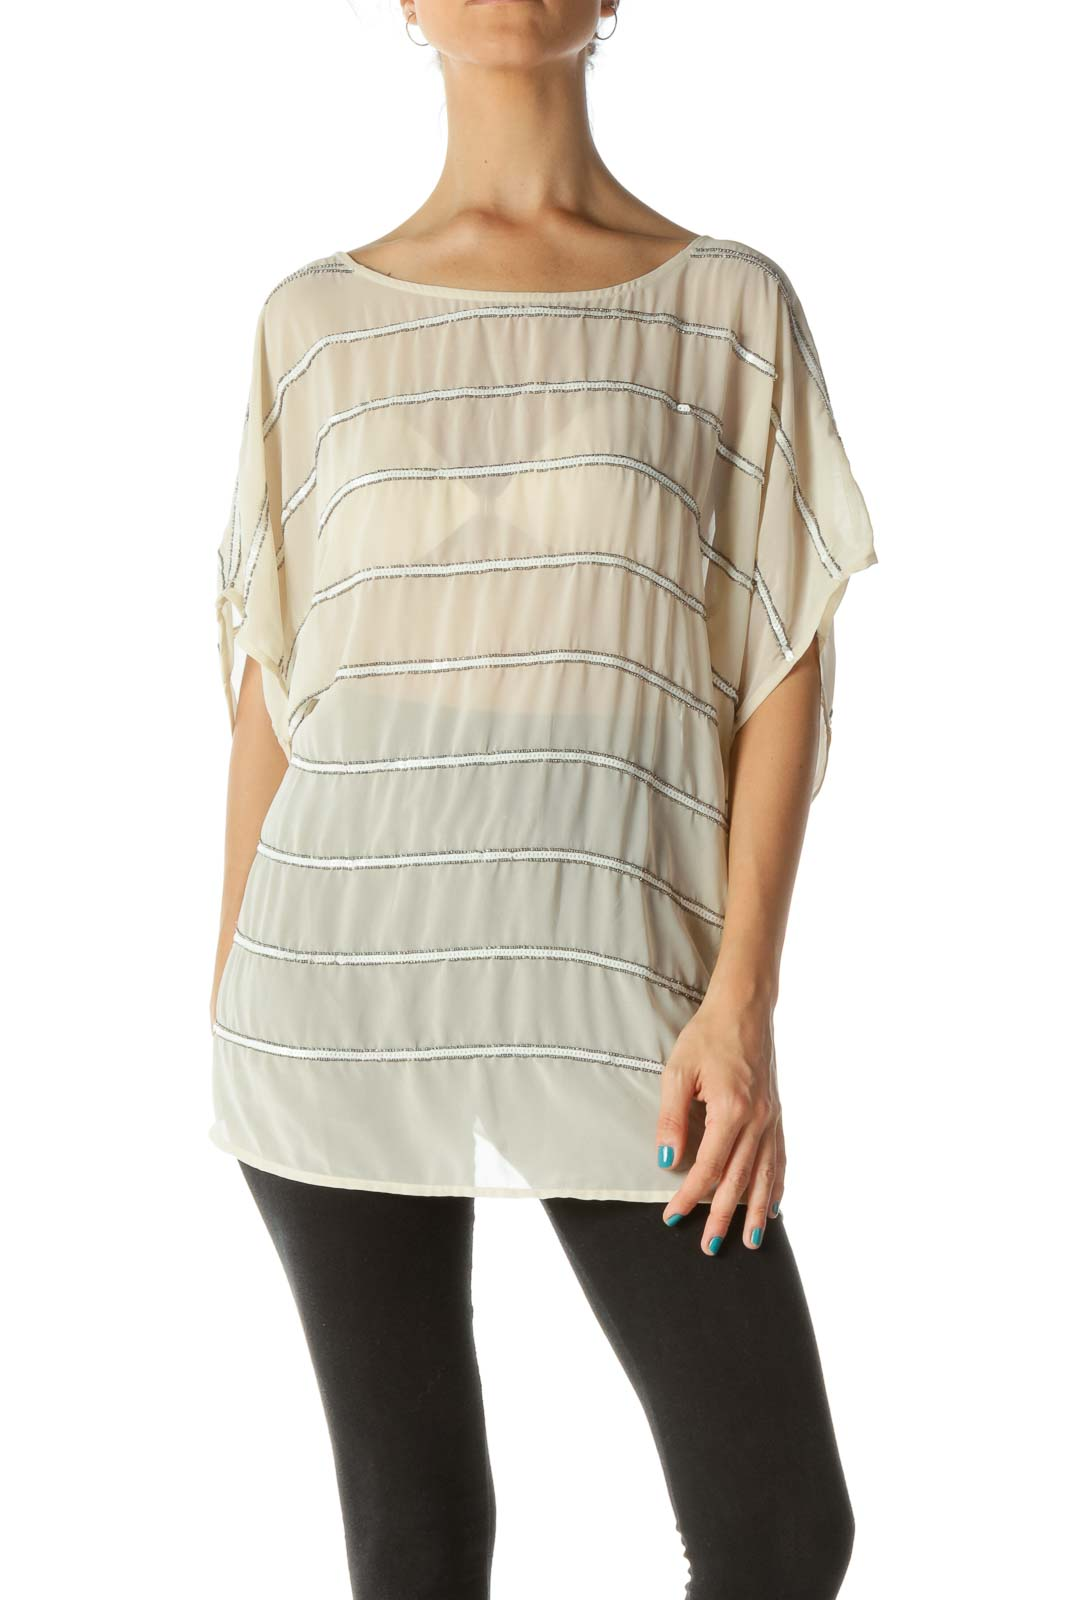 Beige Beaded and Sequined See Through Blouse Front